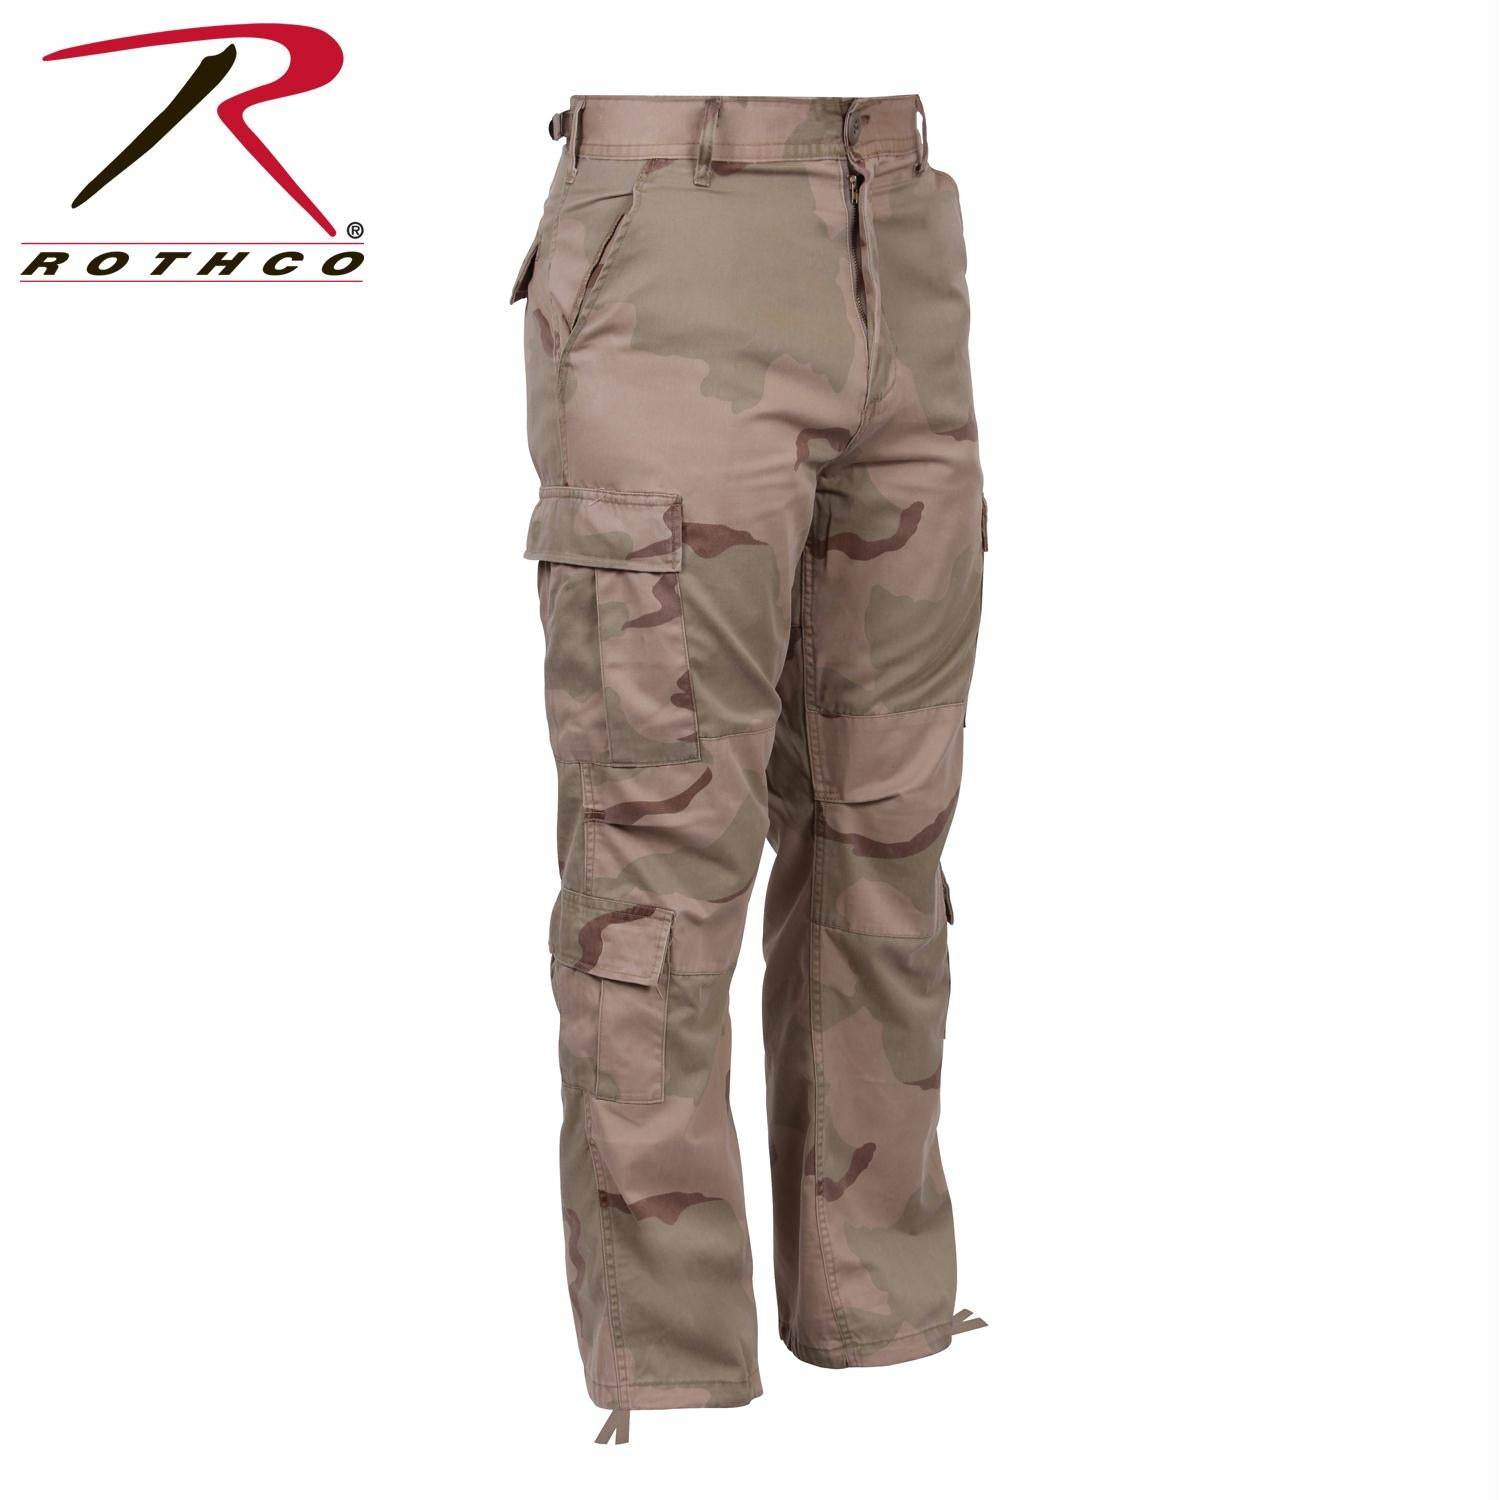 Rothco Camo Tactical BDU Pants - Tri-Color Desert Camo / XL